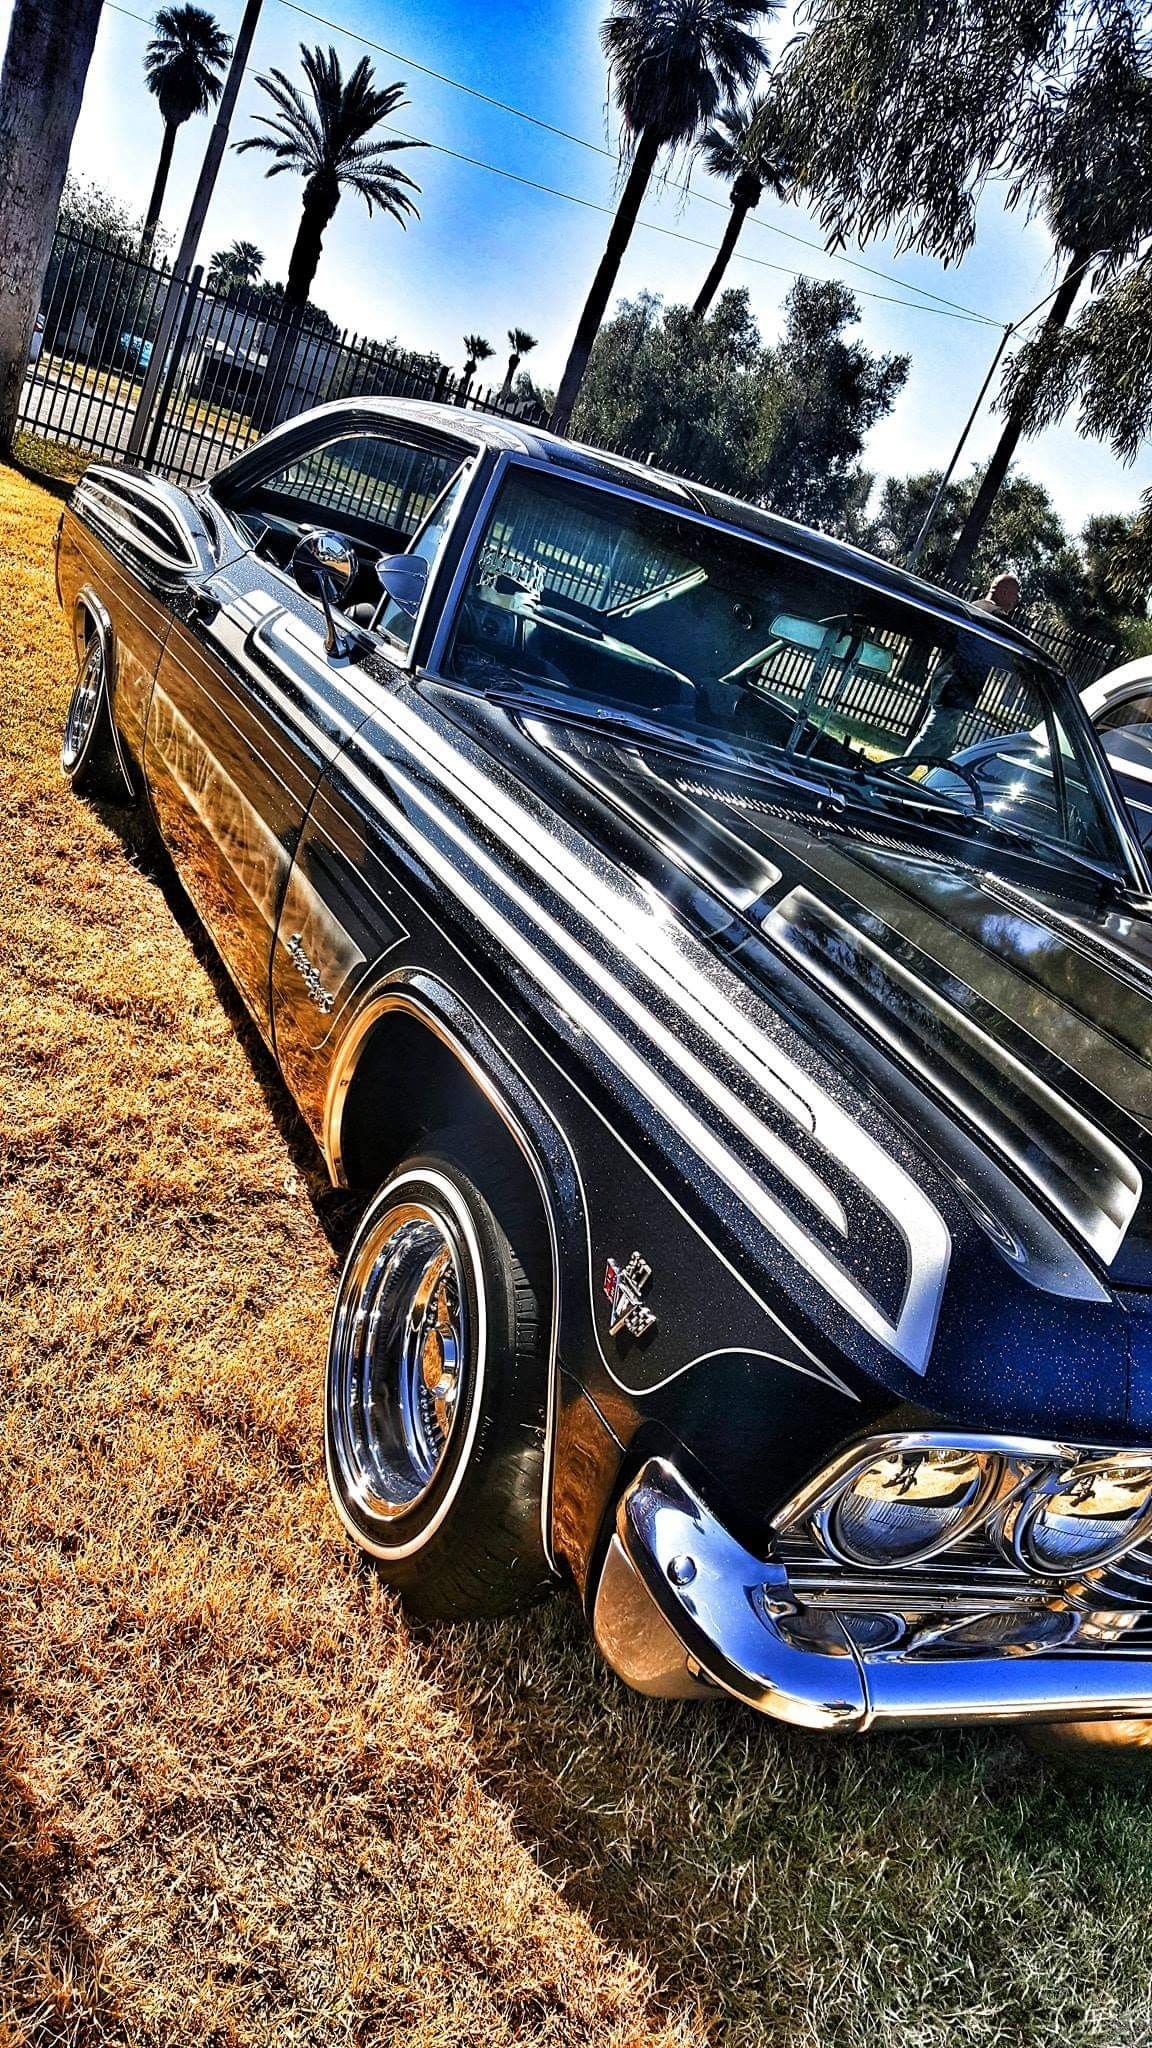 Pin By Adolfo Torres On Cars Old American Cars Lowrider Cars Lowriders